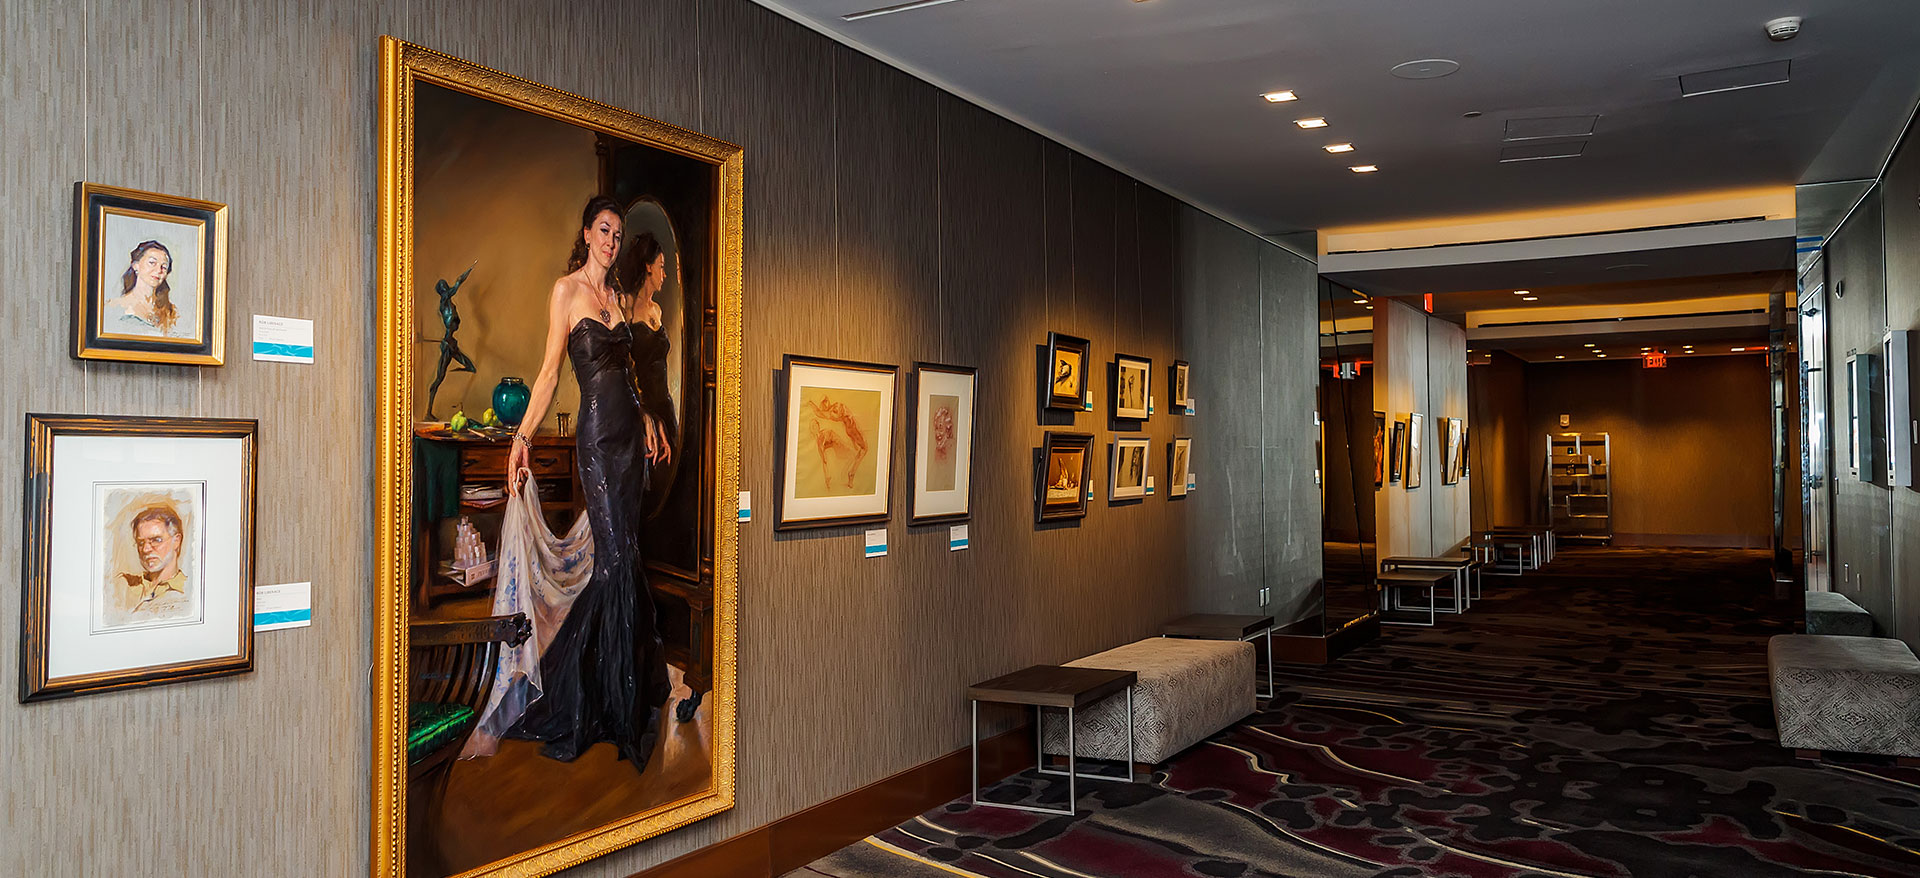 Gallery of Art Ovation Hotel, Autograph Collection at Sarasota, Florida